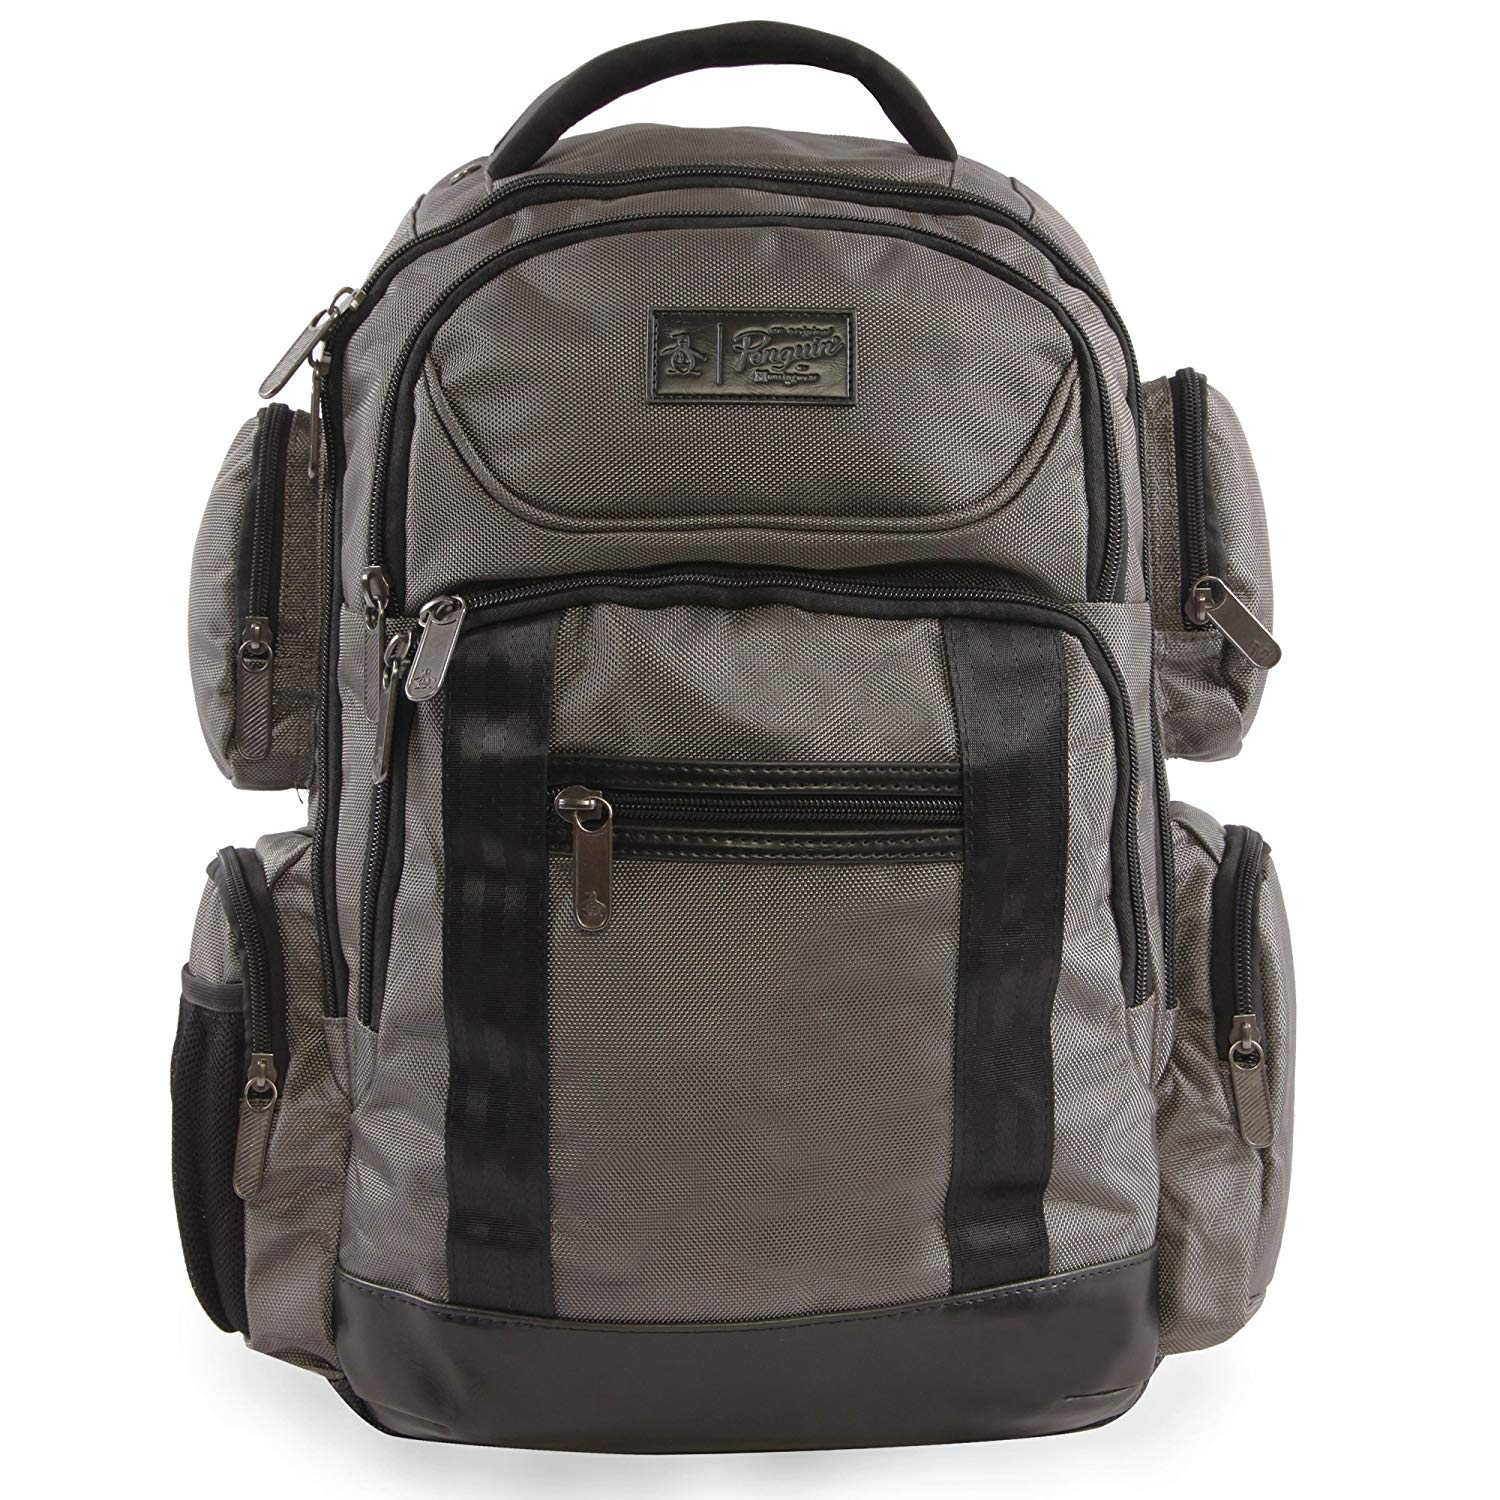 Charcoal Gray 4555 Promaster Cityscape 70 Photo Gear Backpack